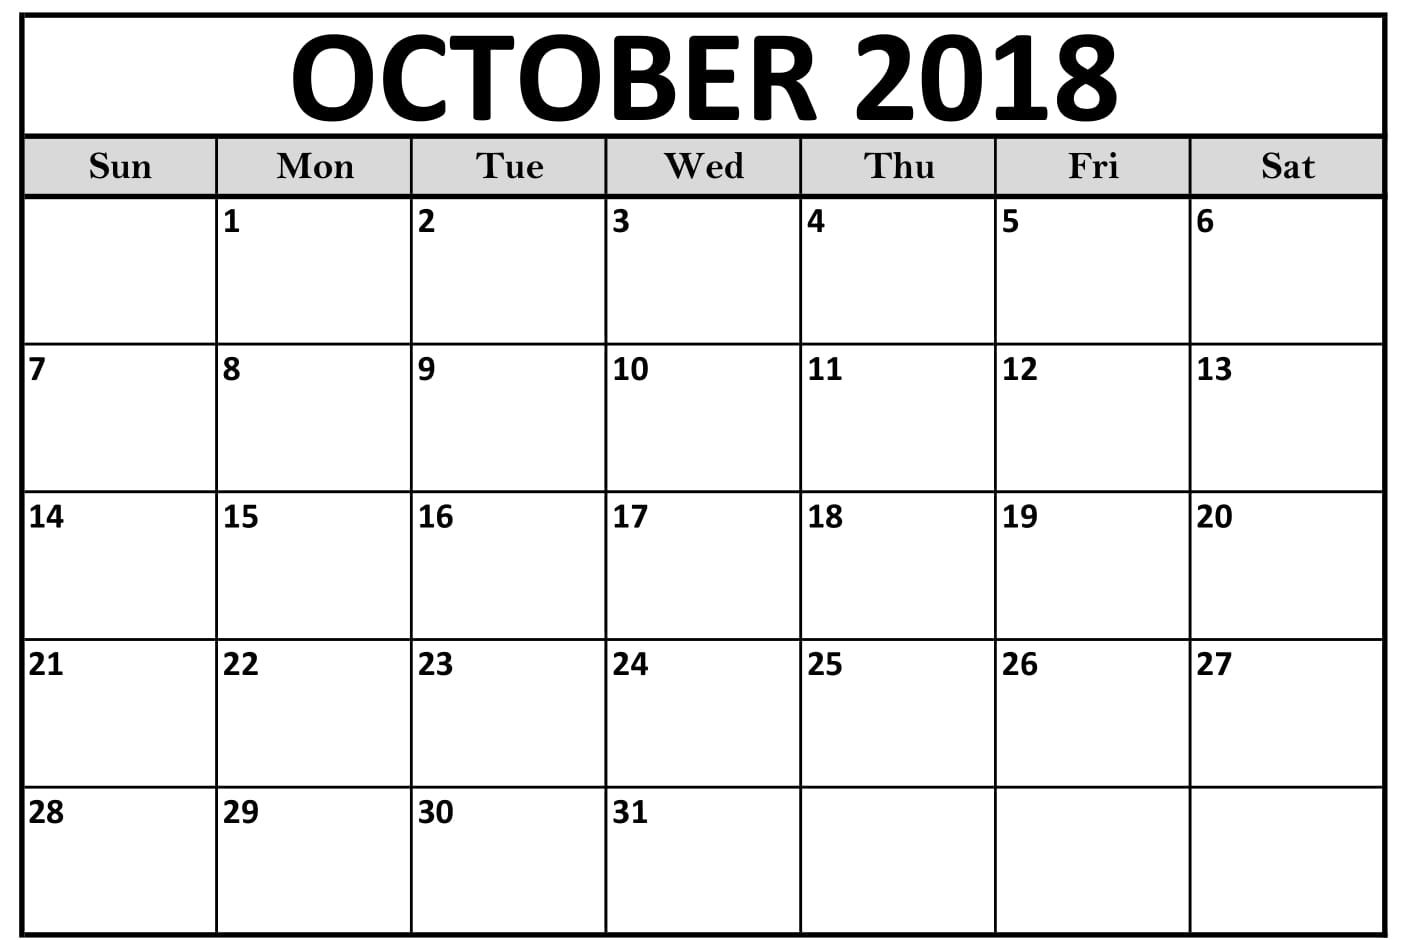 October Calendar 2018 Printable Pages